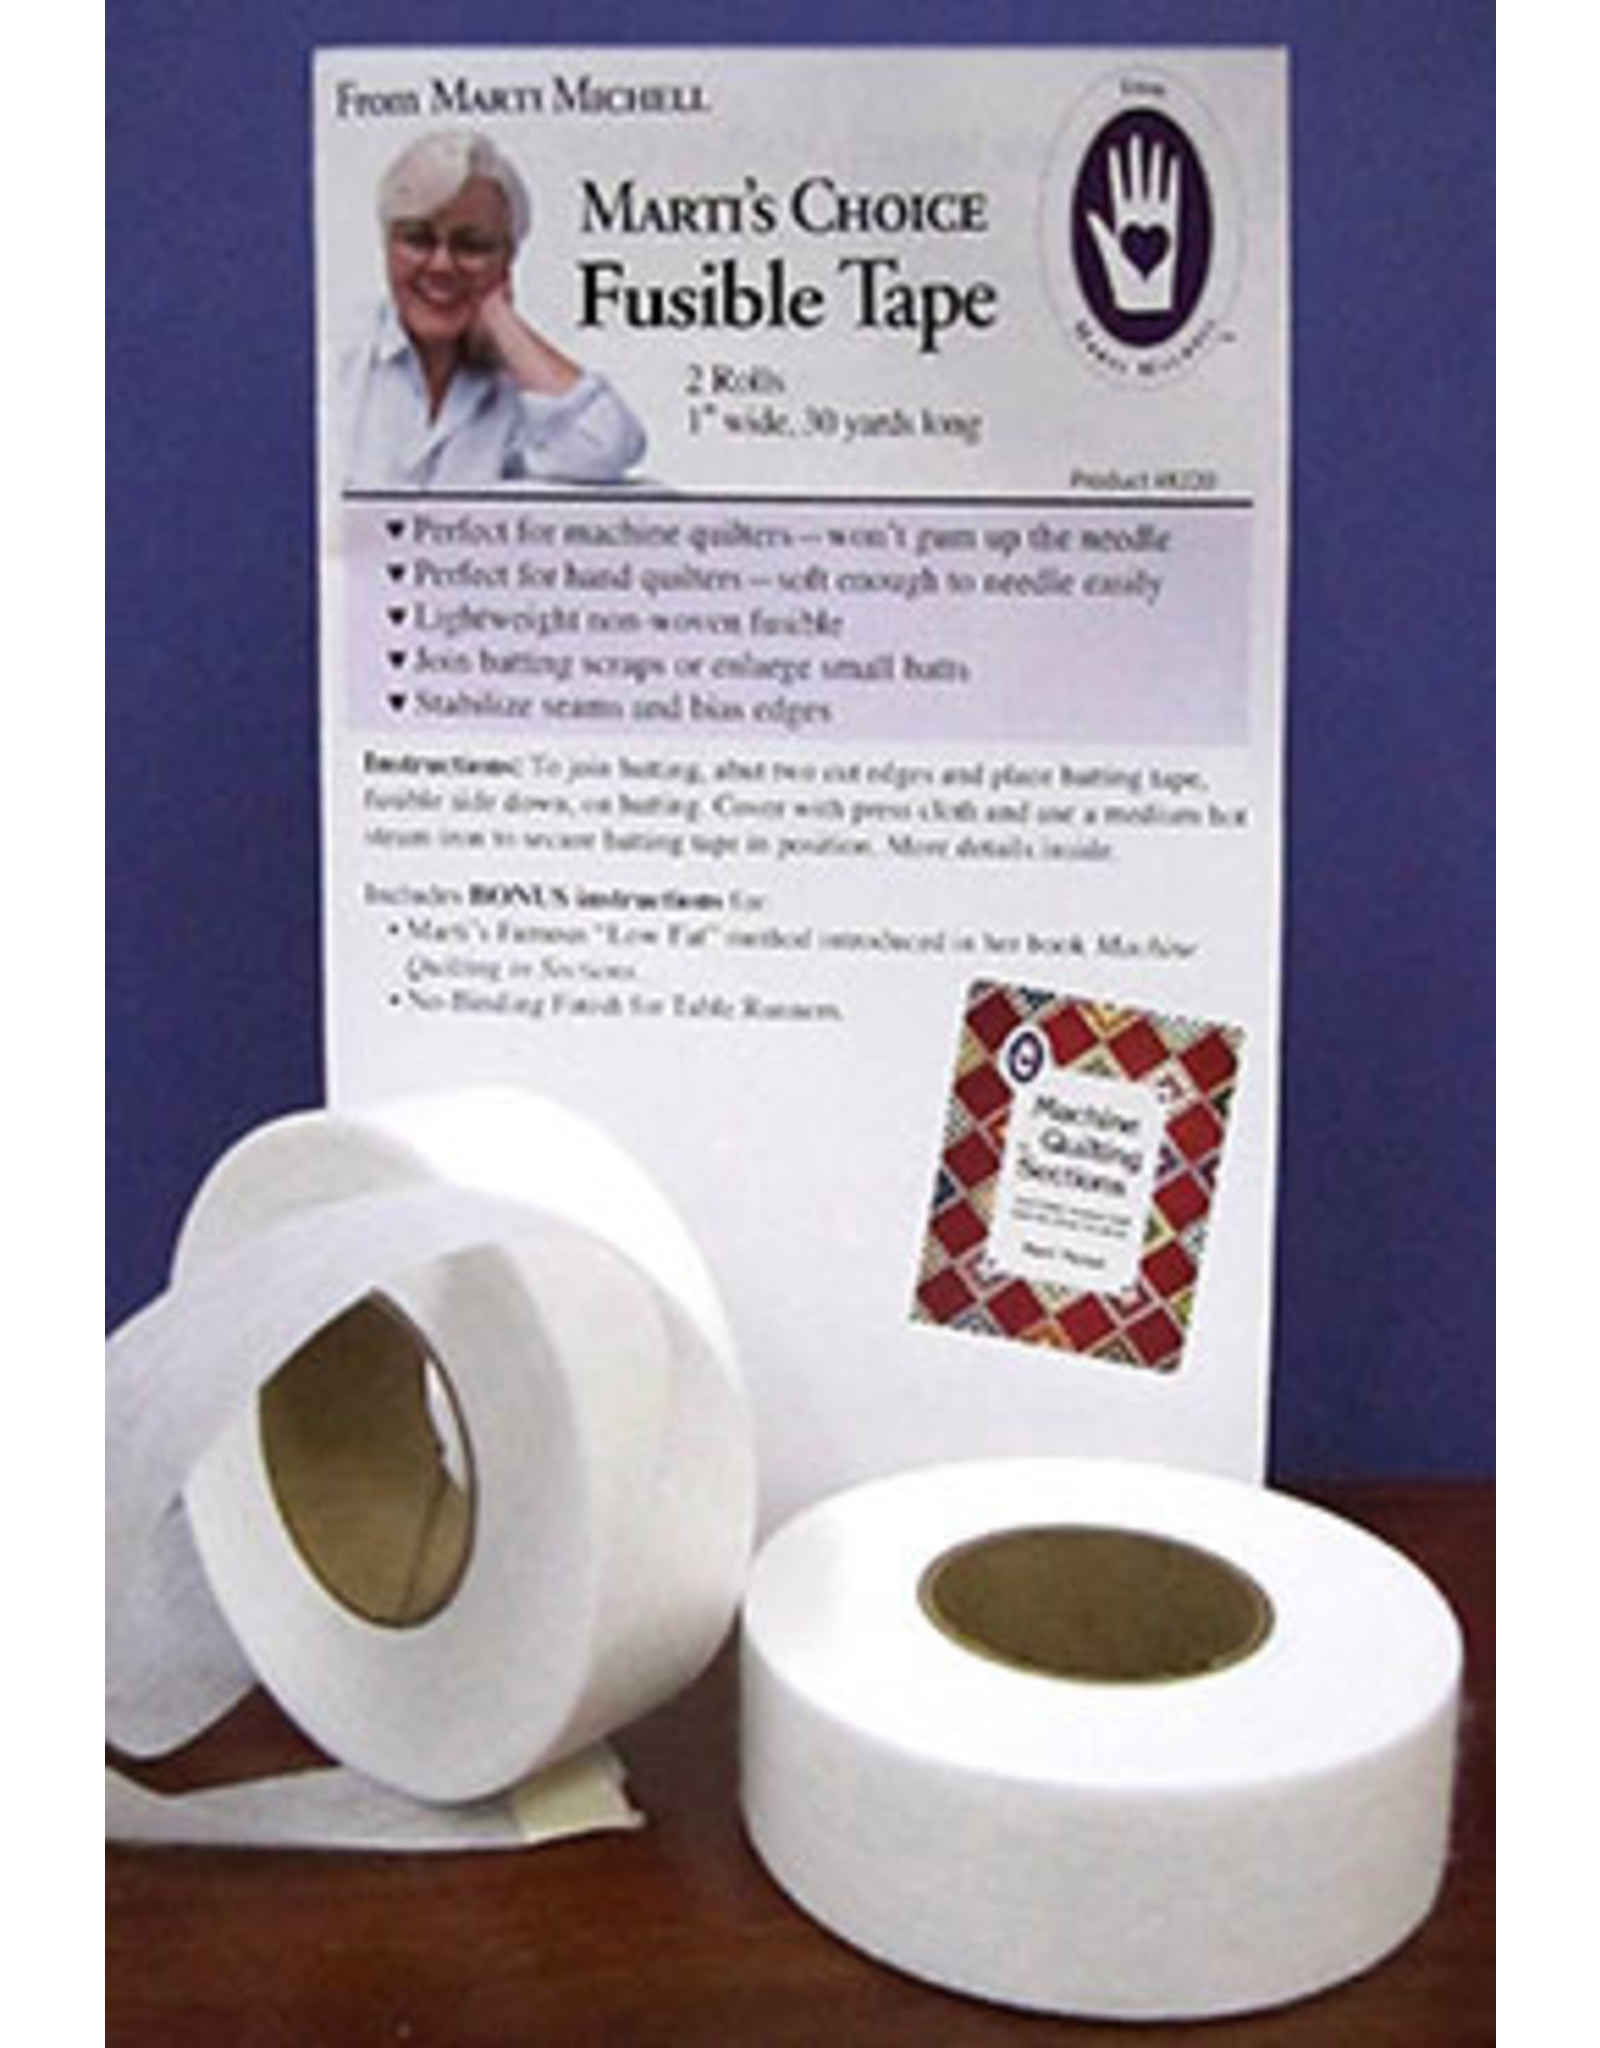 Marti's Choice - Fusible Tape - 1 inch